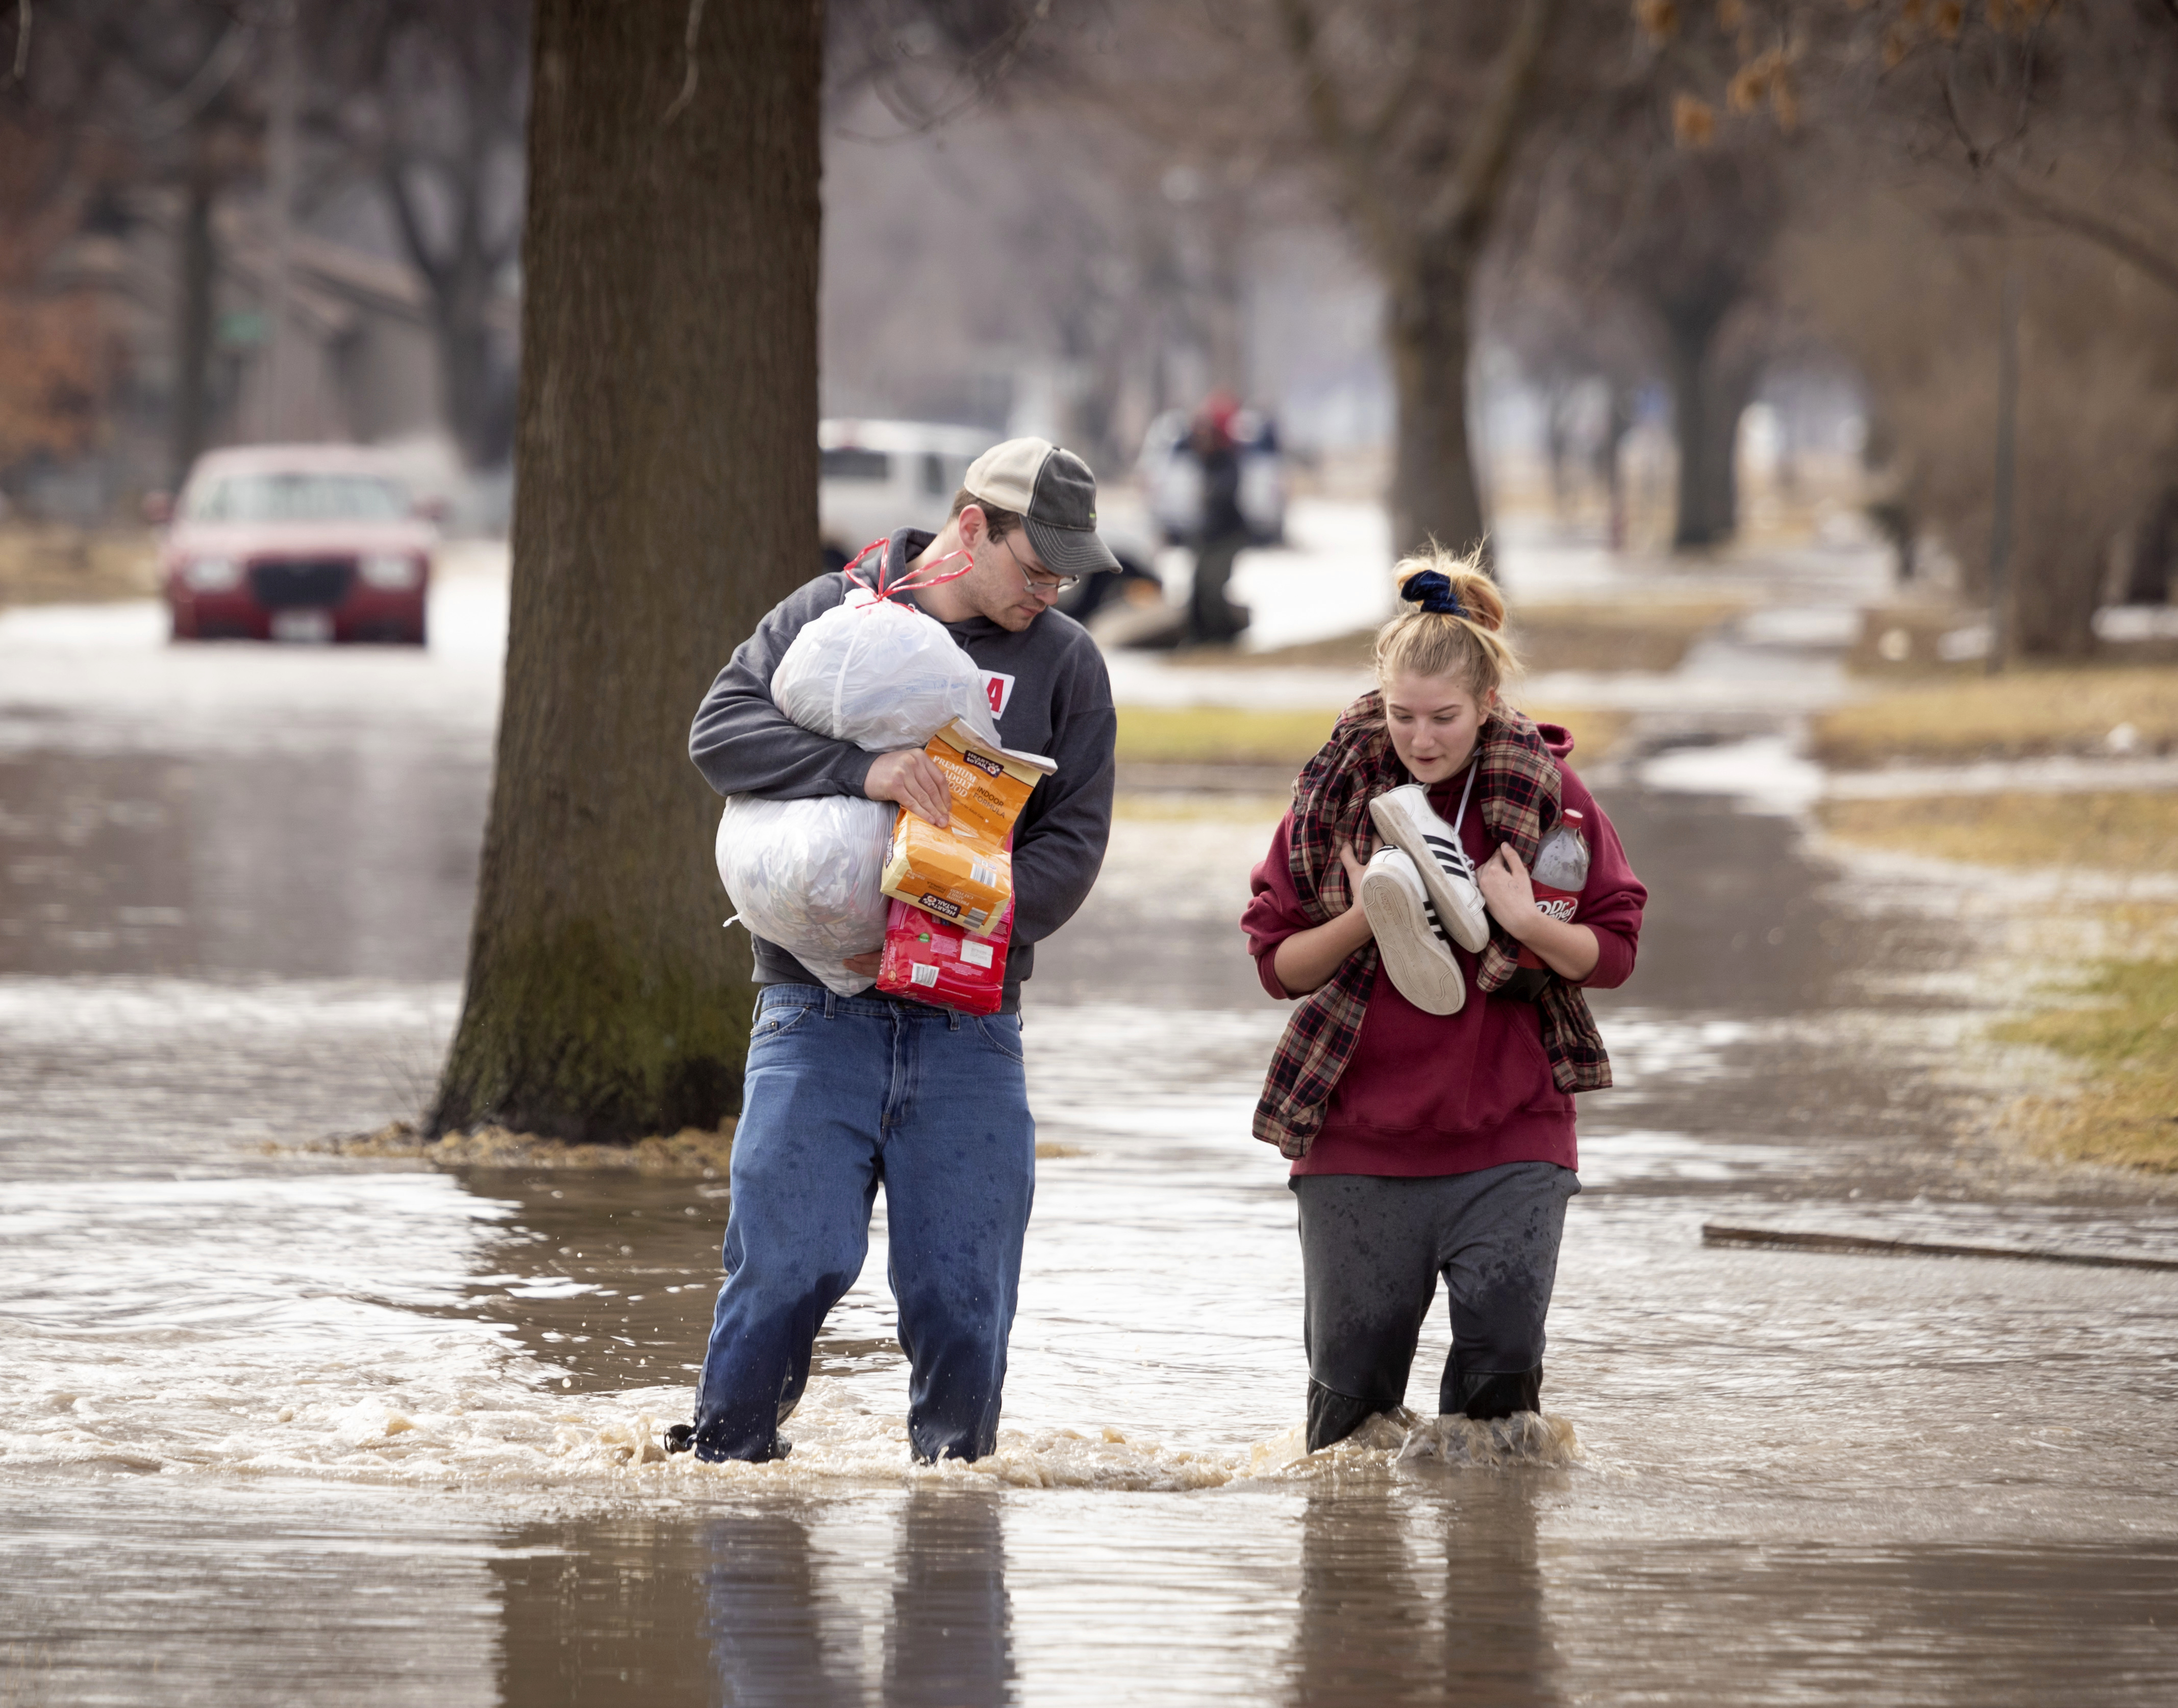 CORRECTS MONTH TO MARCH NOT MAY - Anthony Thomson, left, and Melody Walton make their way out of a flooded neighborhood Sunday, March 17, 2019, in Fremont, Neb. Hundreds of people were evacuated from their homes in Nebraska and Iowa as levees succumbed to the rush of water. (Kent Sievers/Omaha World-Herald via AP)